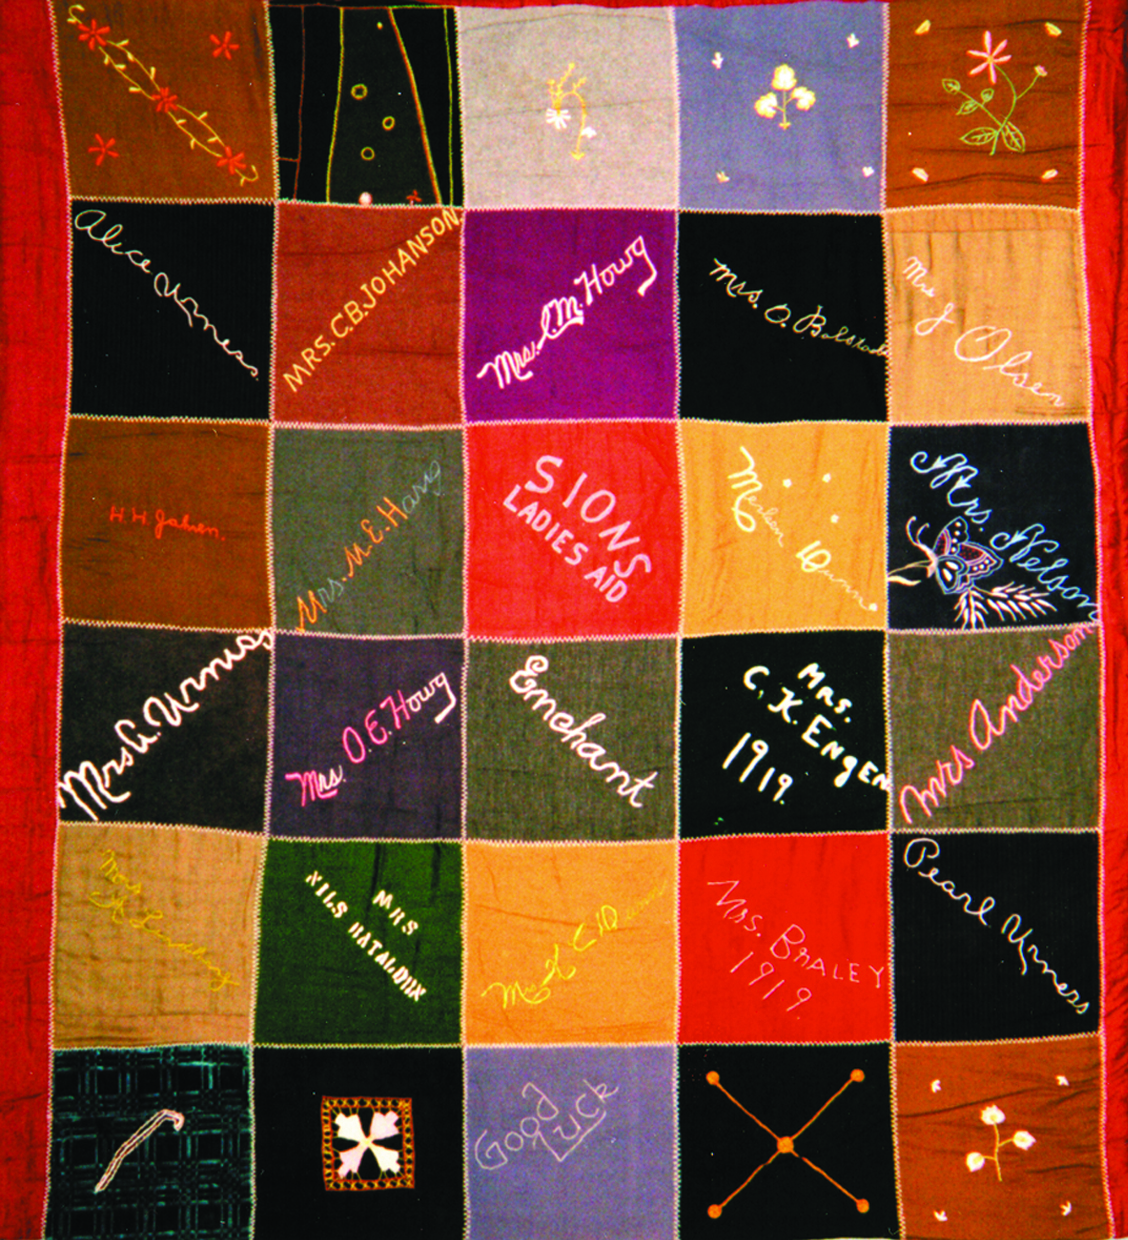 Enchant Sions Ladies Aid Quilt, 1919. Photograph from Lethbridge living archives, Spring 2005.